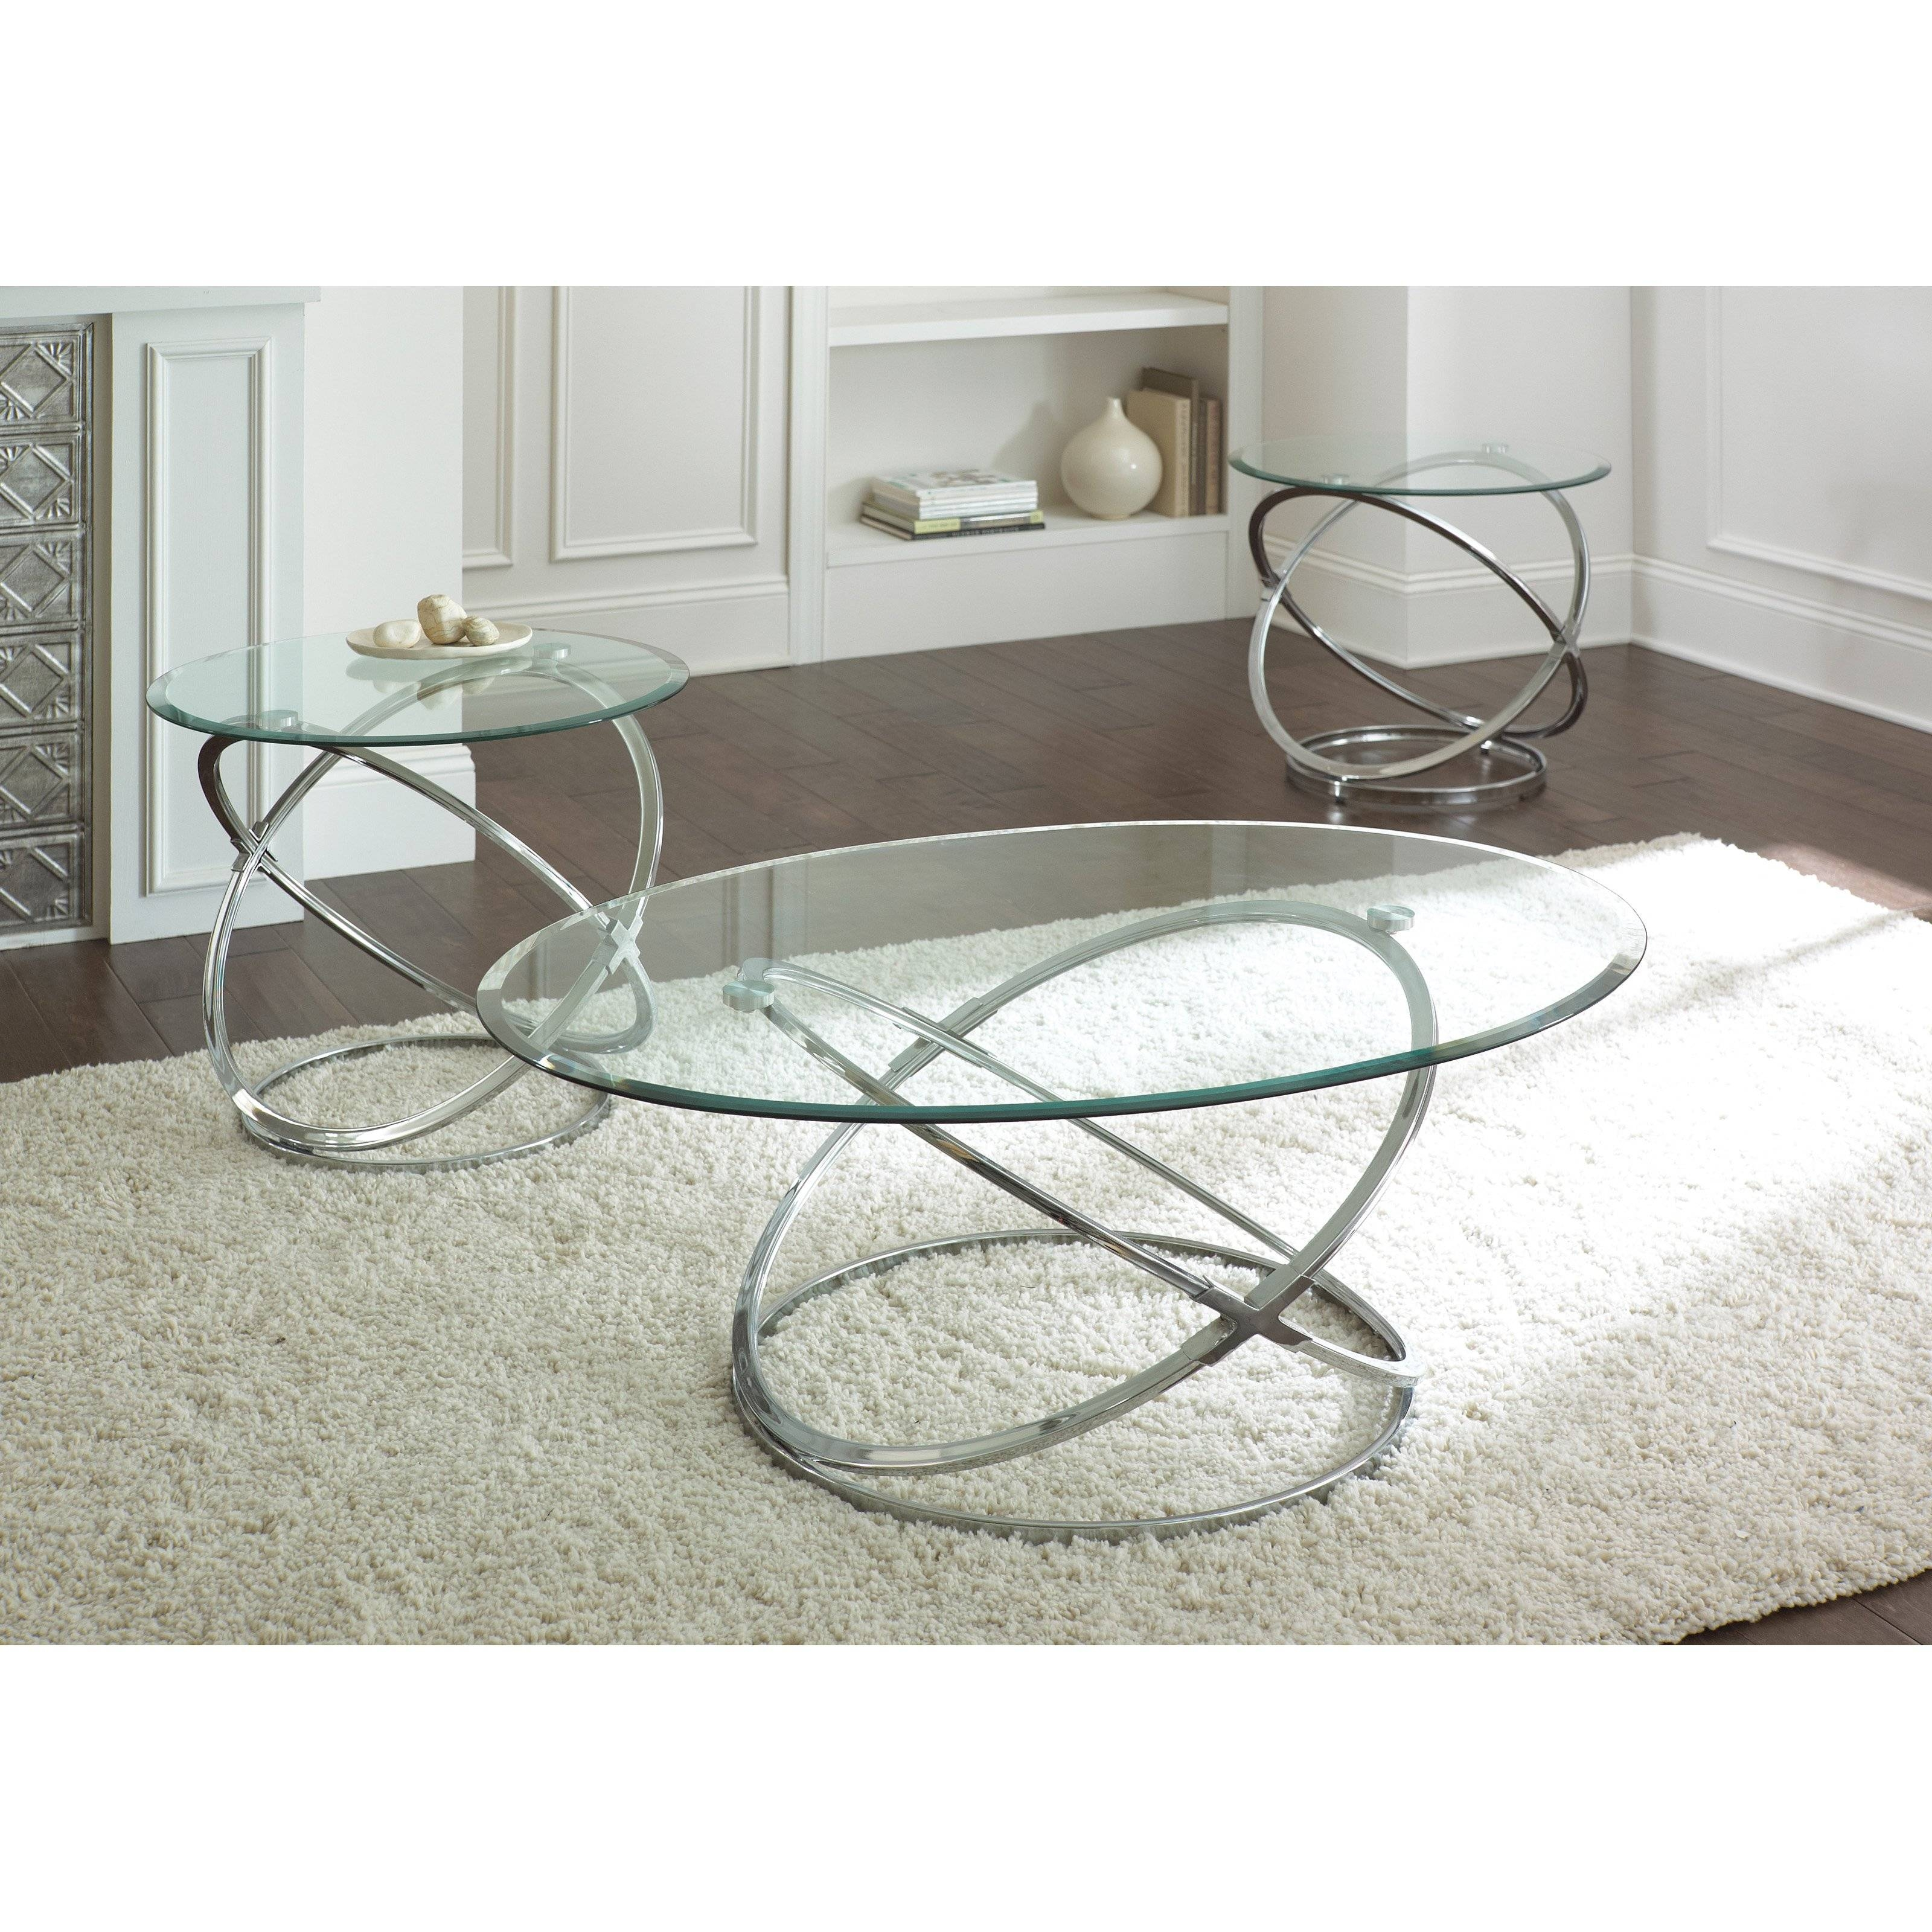 Steve Silver Orion Oval Chrome And Glass Coffee Table Set - Coffee intended for Chrome and Wood Coffee Tables (Image 25 of 30)